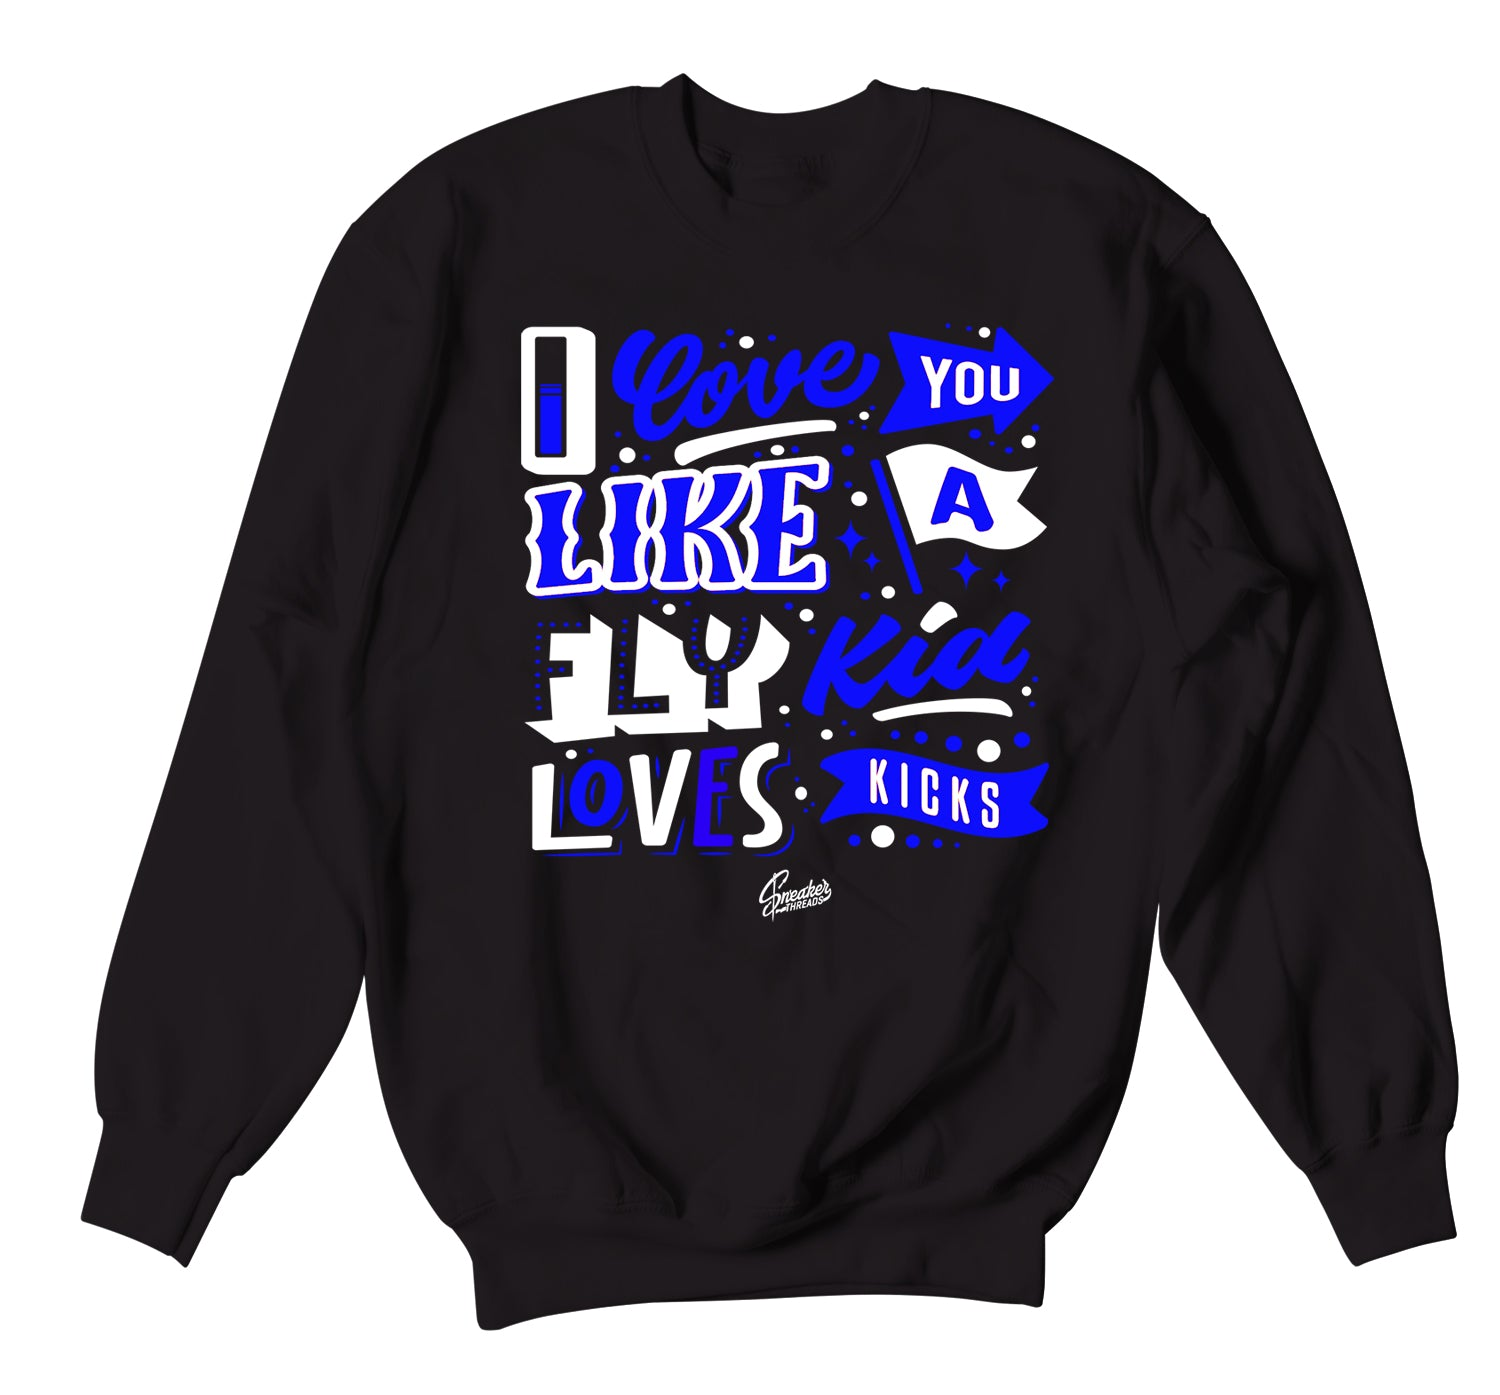 Air Max 90 Hyper Royal Love Kicks Sweater